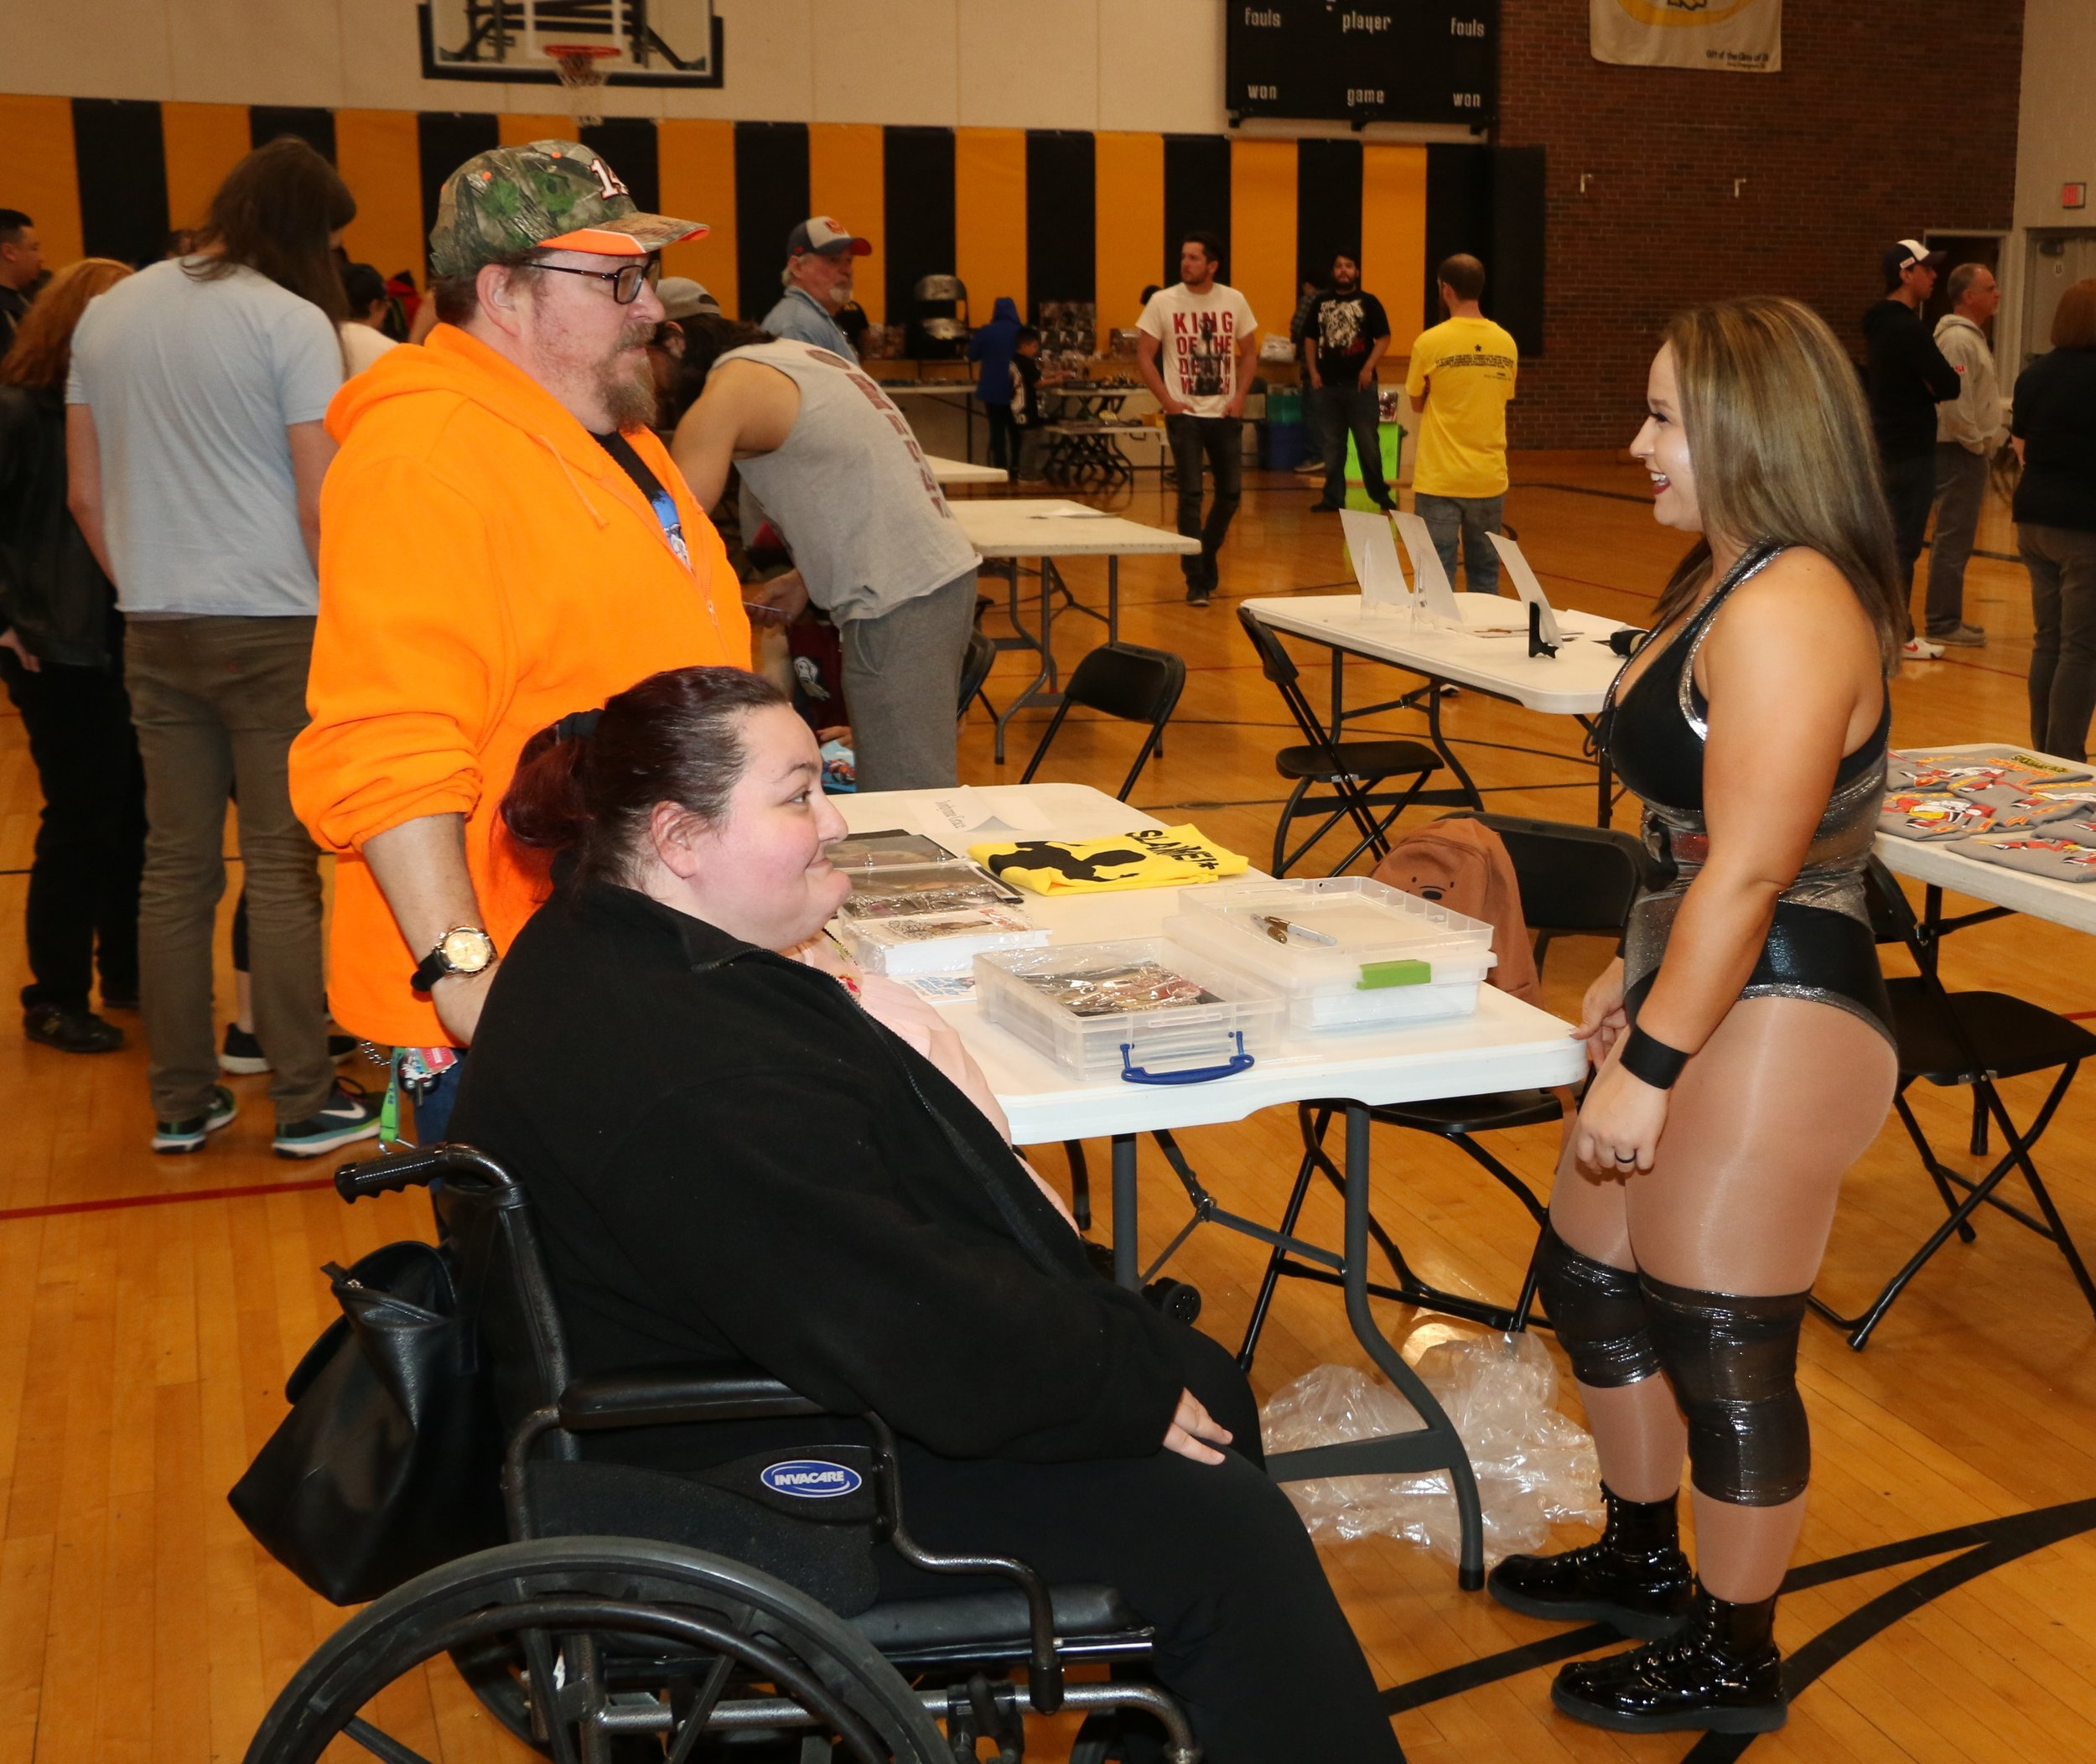 Jordynne Grace, right, talks to fans during intermission.